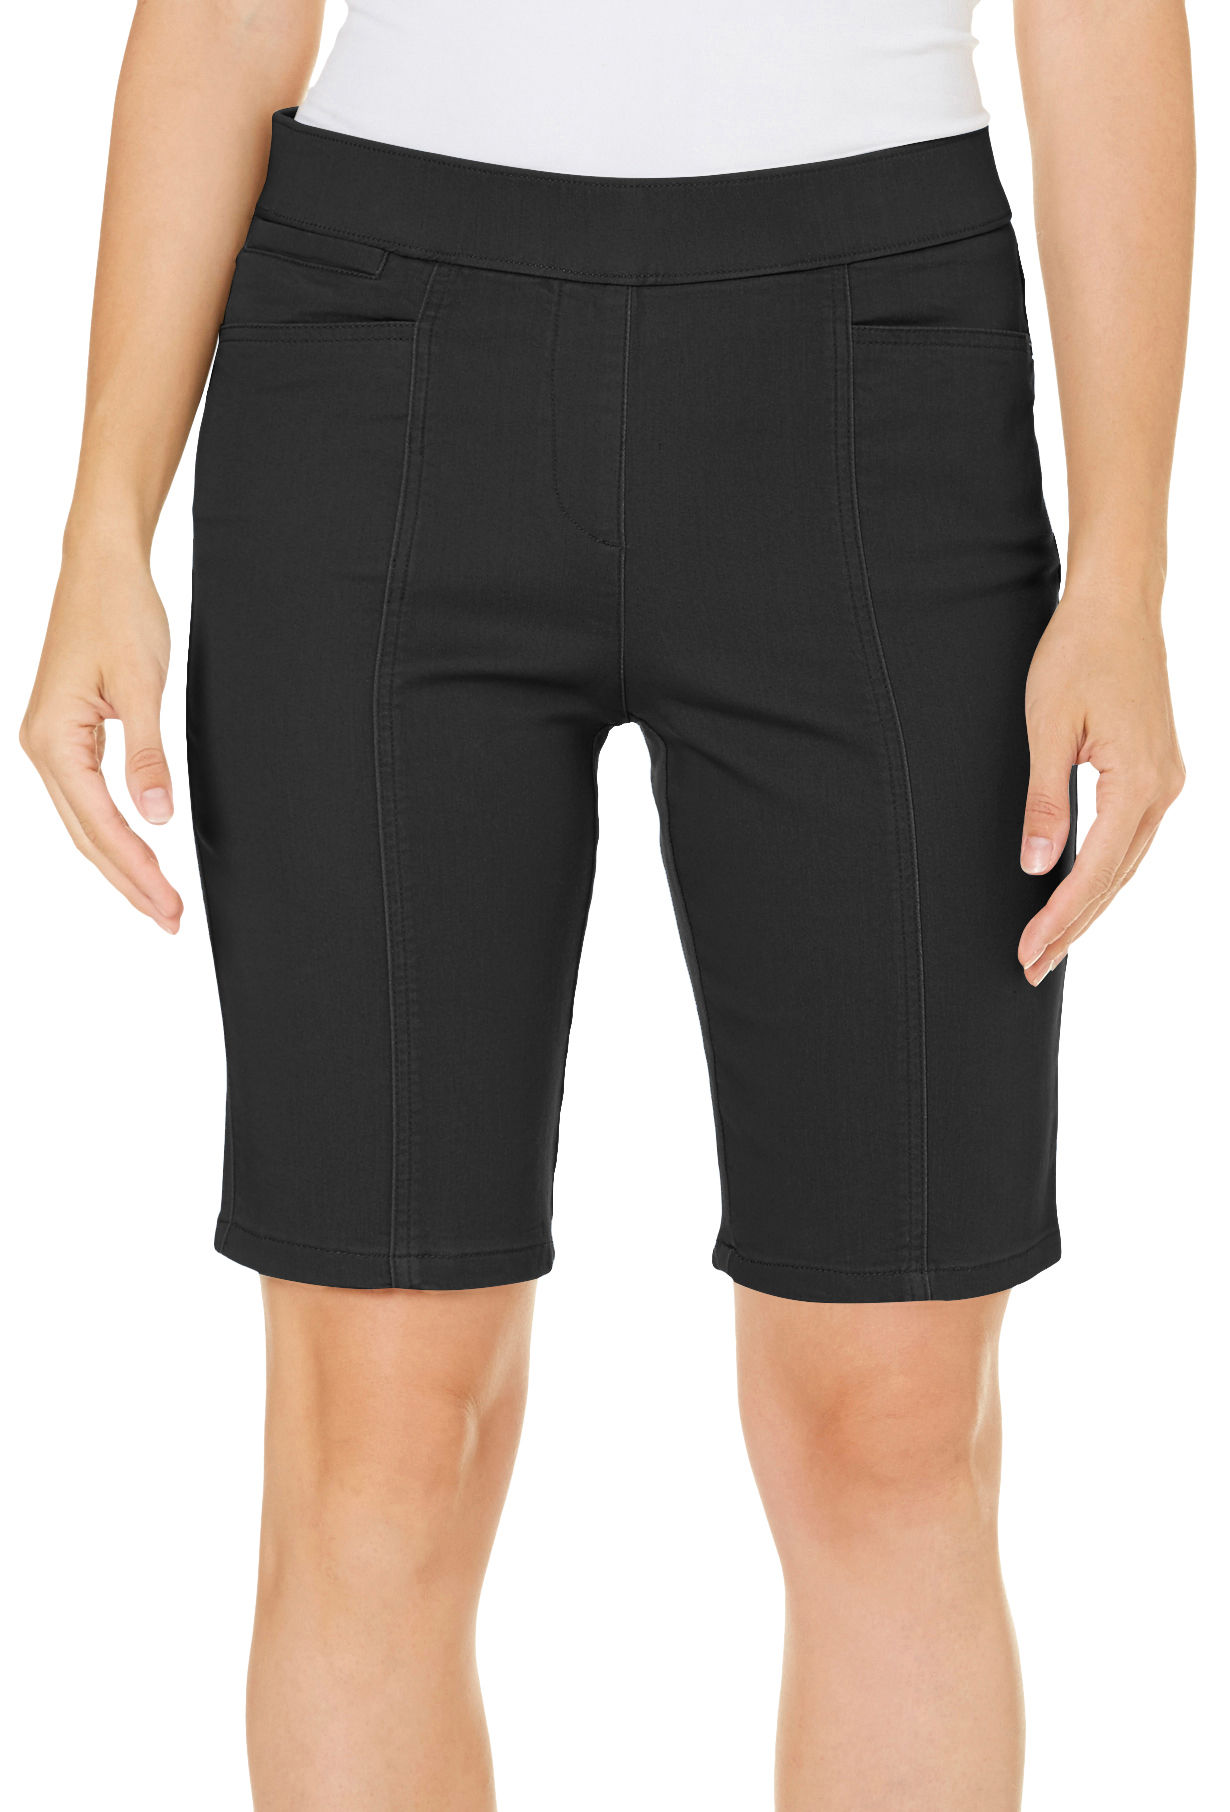 Coral Bay Womens Pull On Stretch Solid Shorts 14 Black Ebay